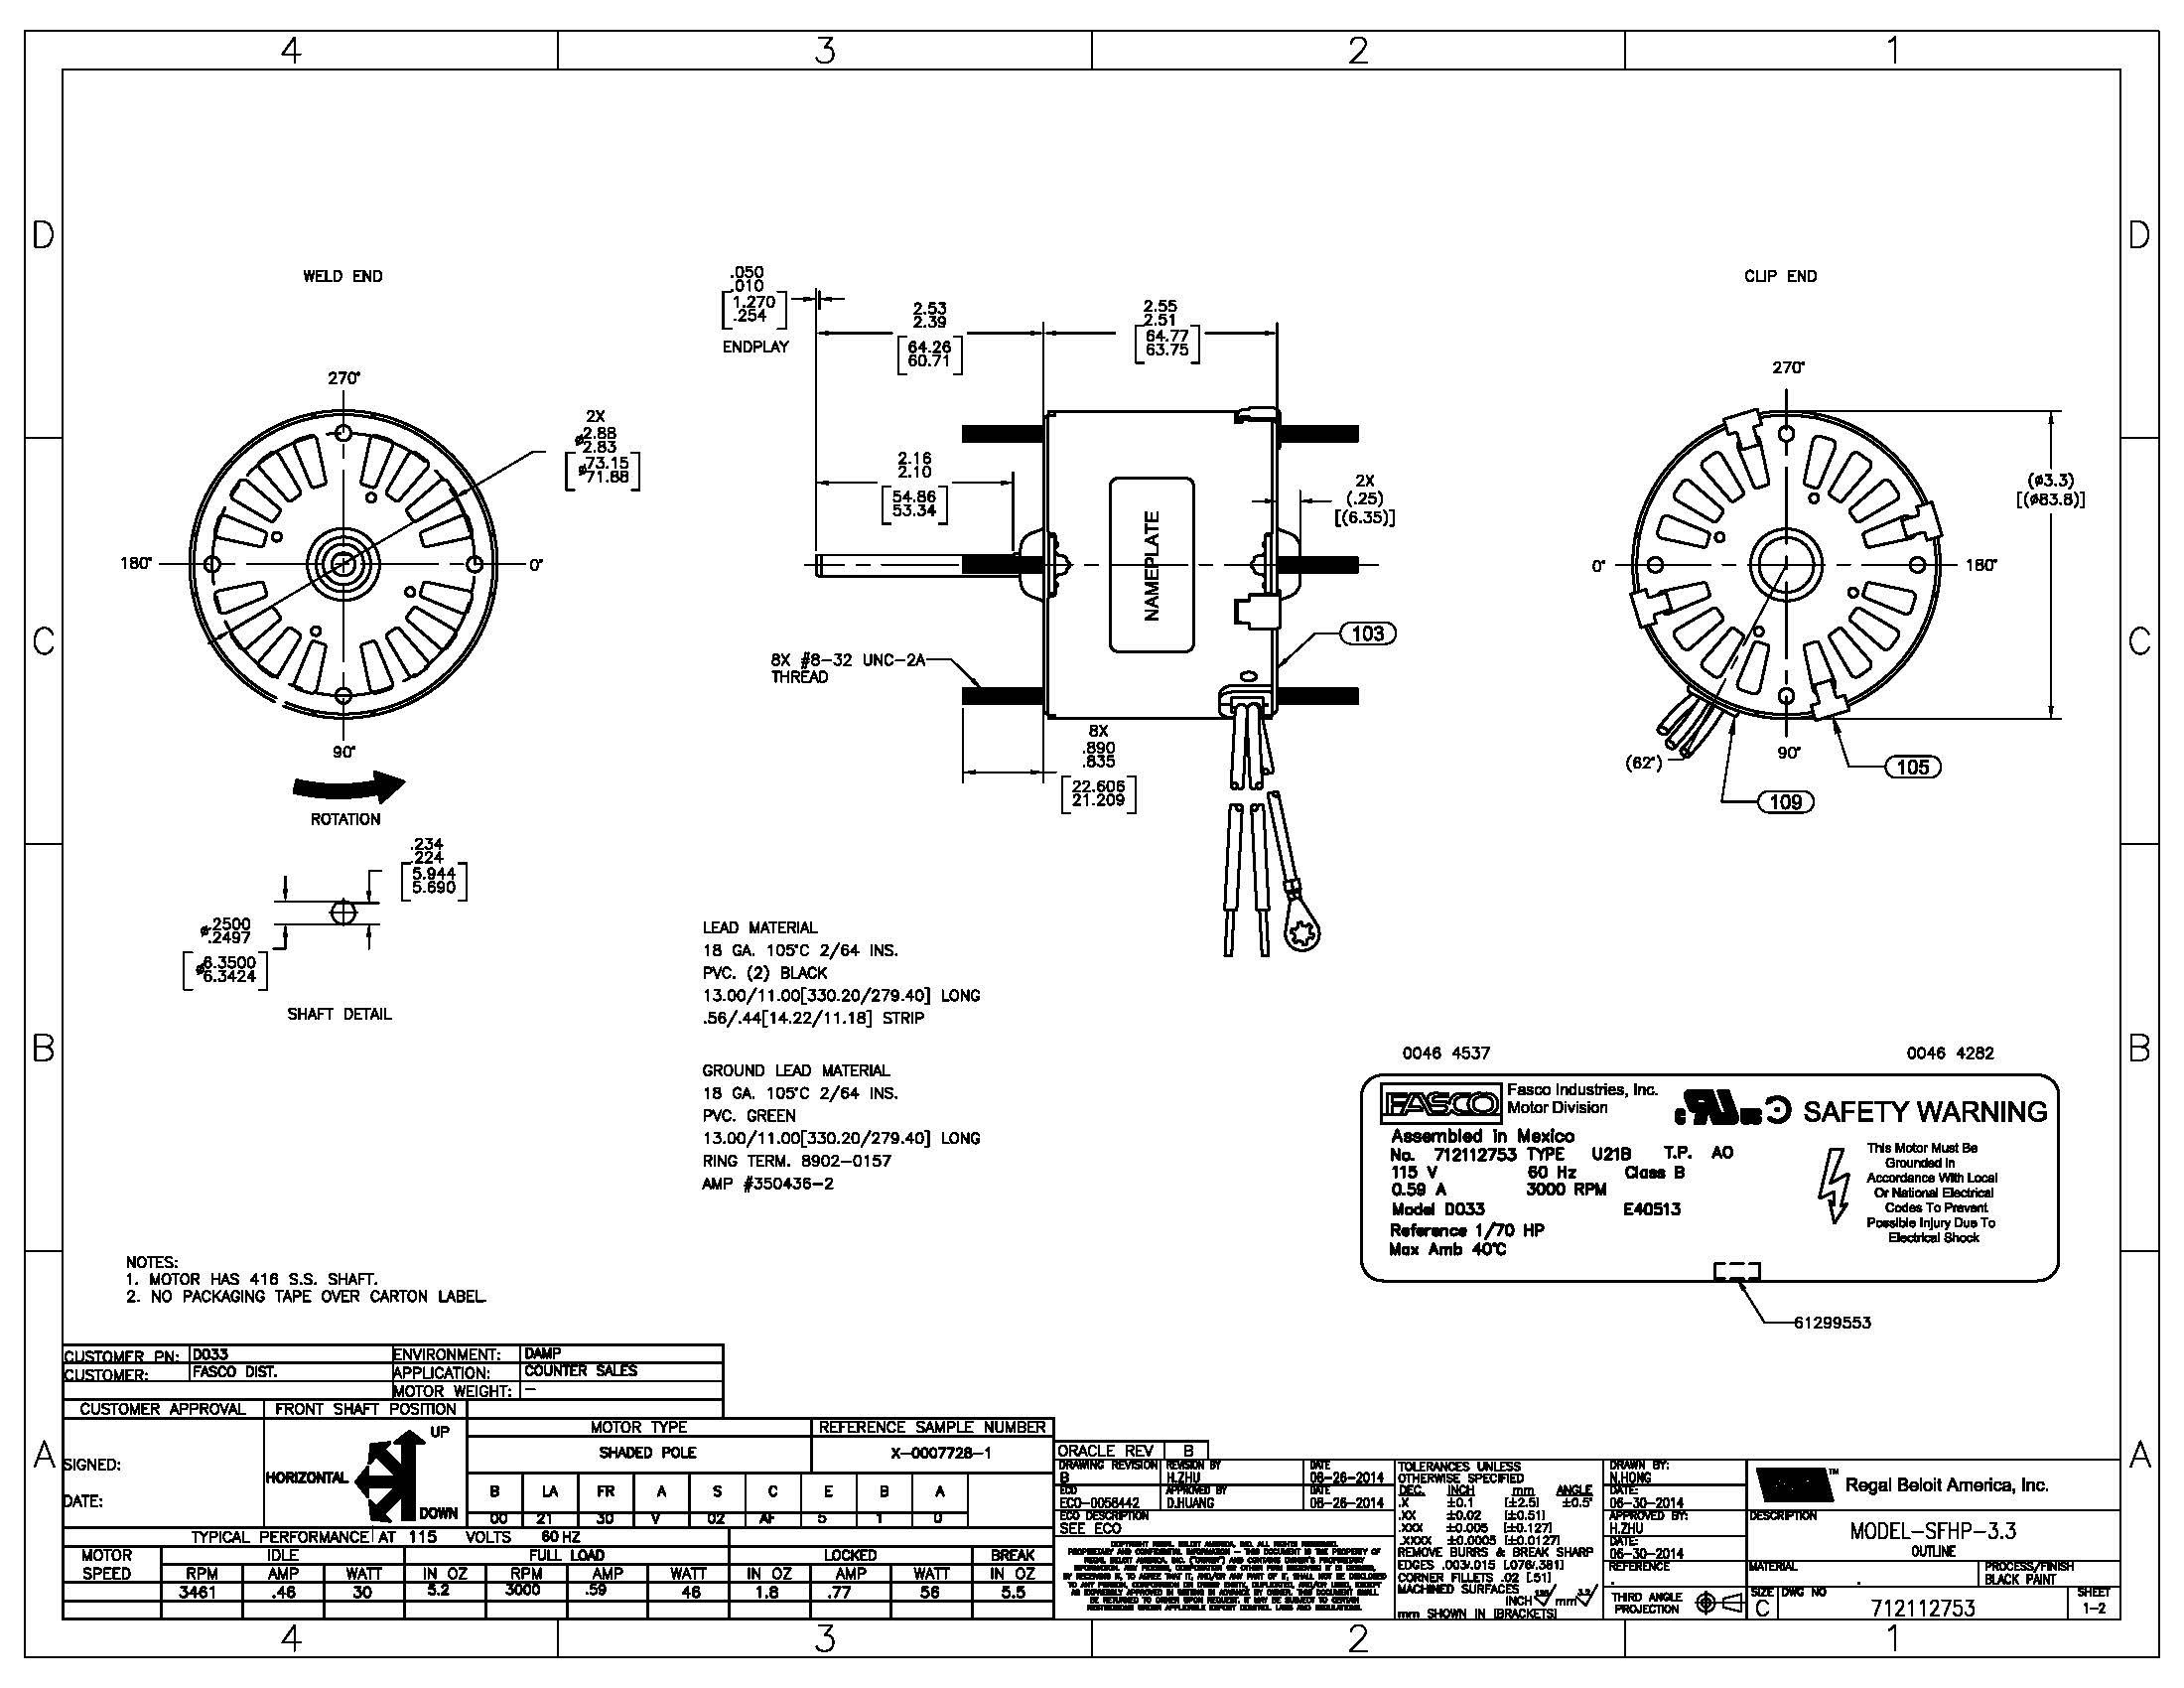 Pentair Pump Wiring Diagram - Cool Wiring Diagrams on pentair superflo wiring diagram, hayward super ii wiring diagram, flow switch wiring diagram, pentair challenger pump wiring diagram,